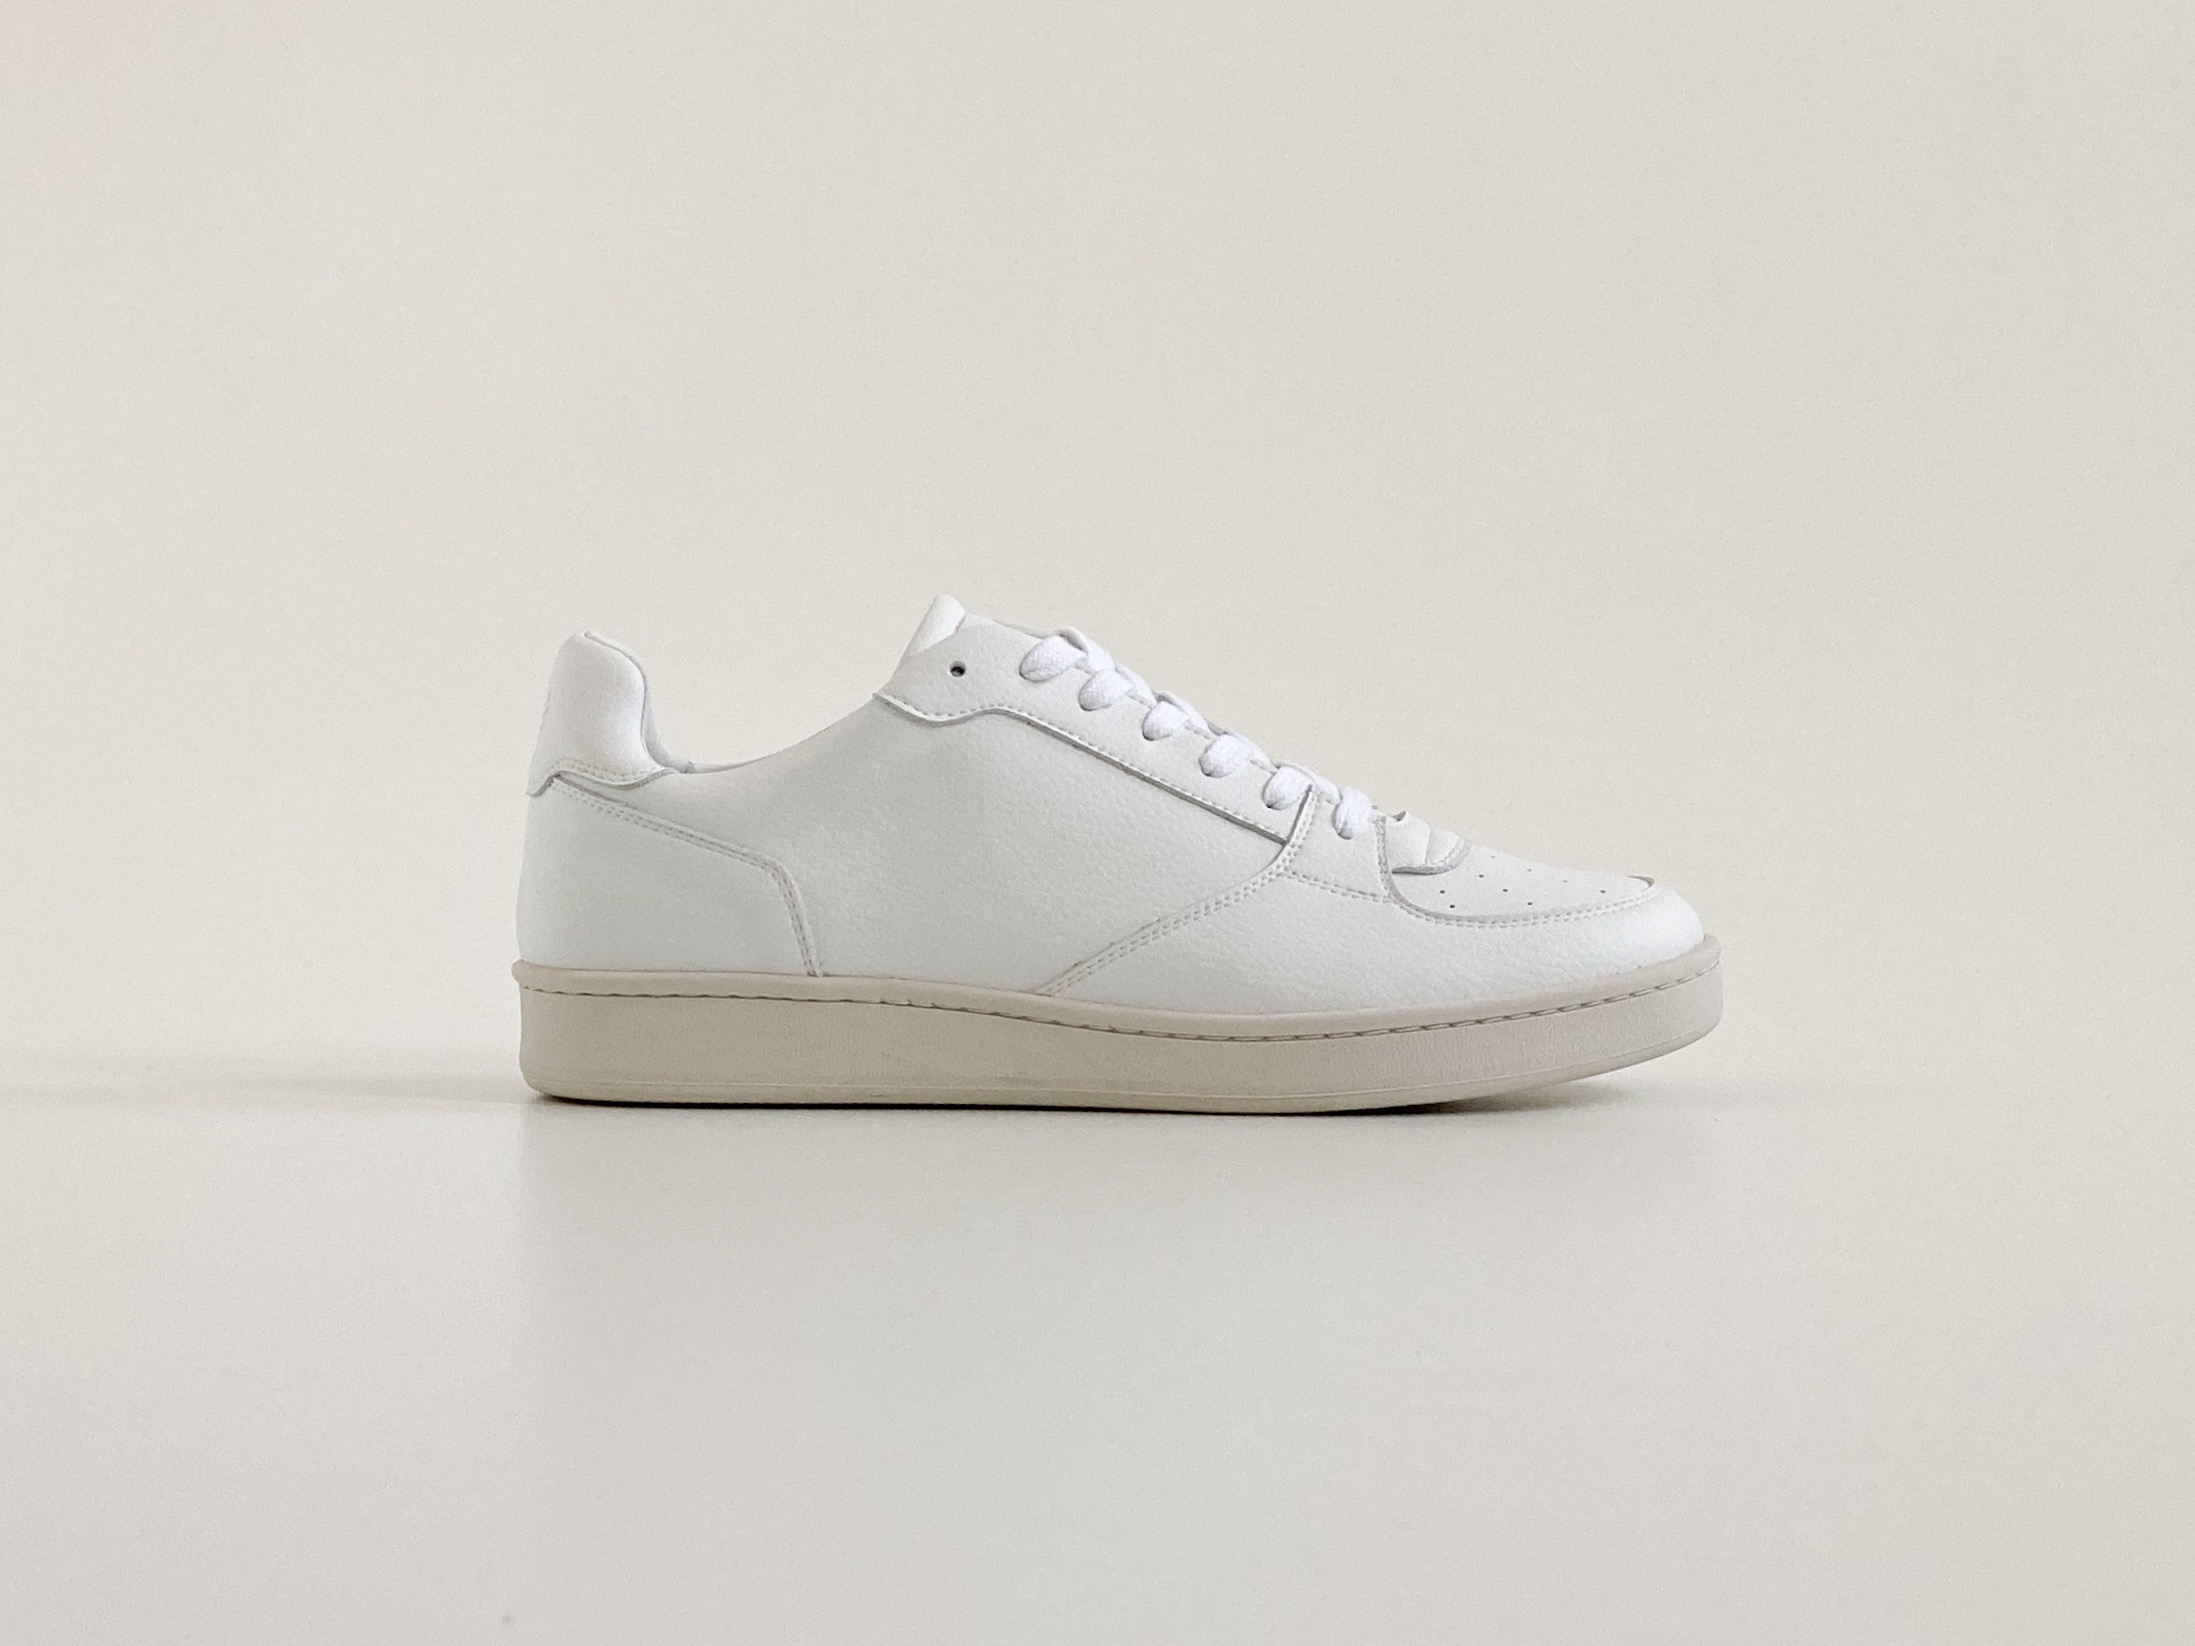 Humans Are Vain Eden V2 Sustainable Sneaker - White